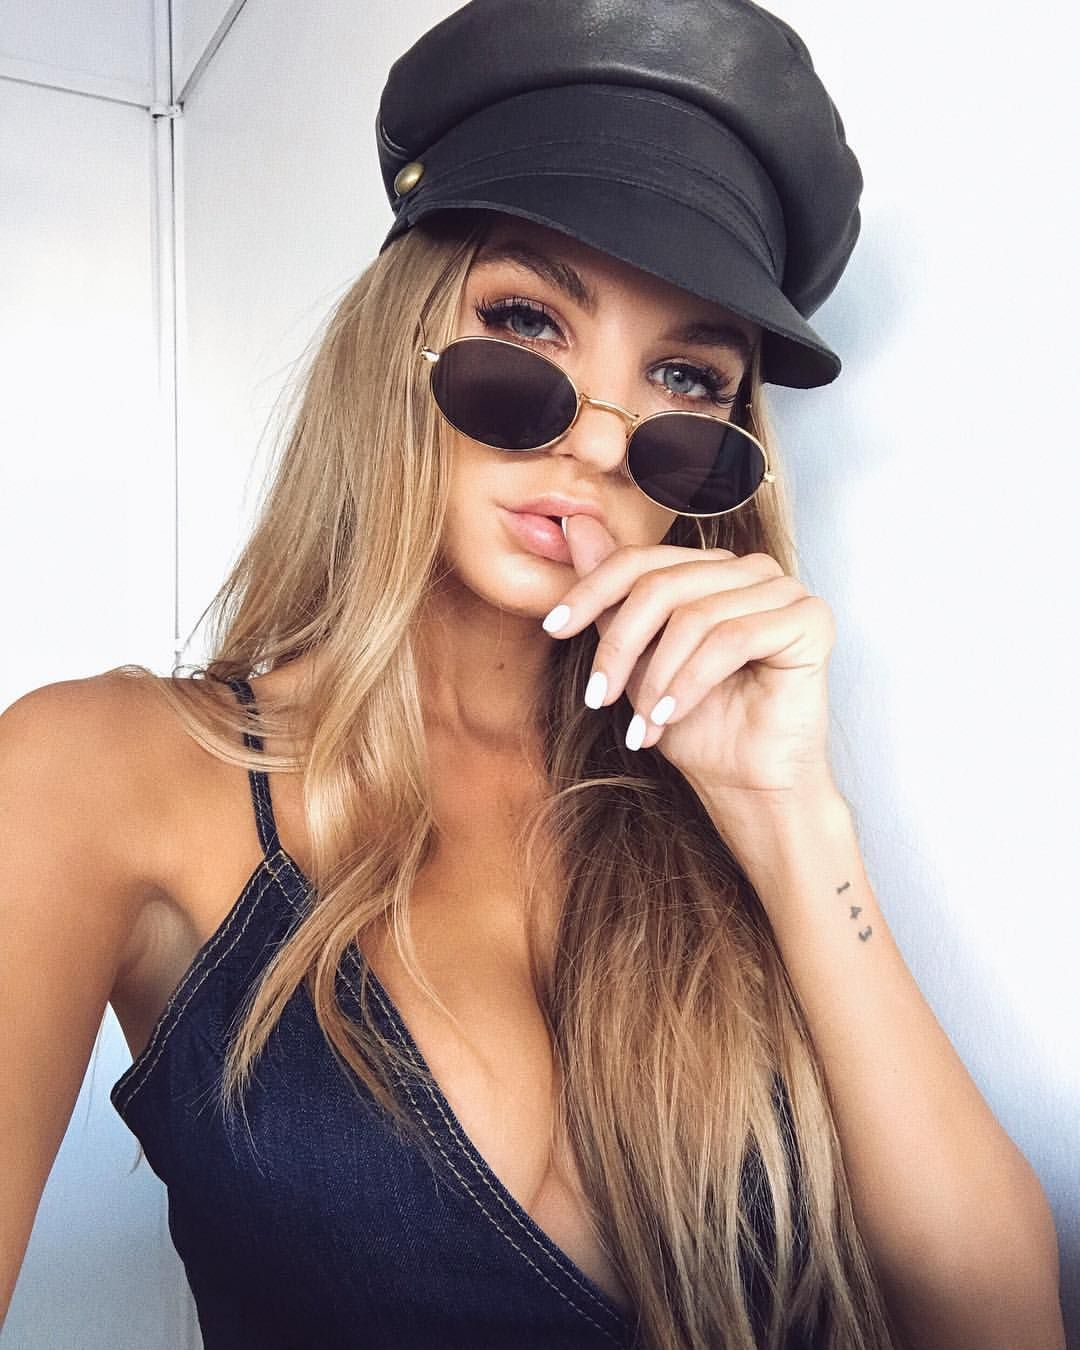 f504f17125 TRENDY AF 💣 Lack of Color Leather Lola Cap    Frankie Oval Sunglasses    Soho  Denim Mini Dress ☆ Tap to shop